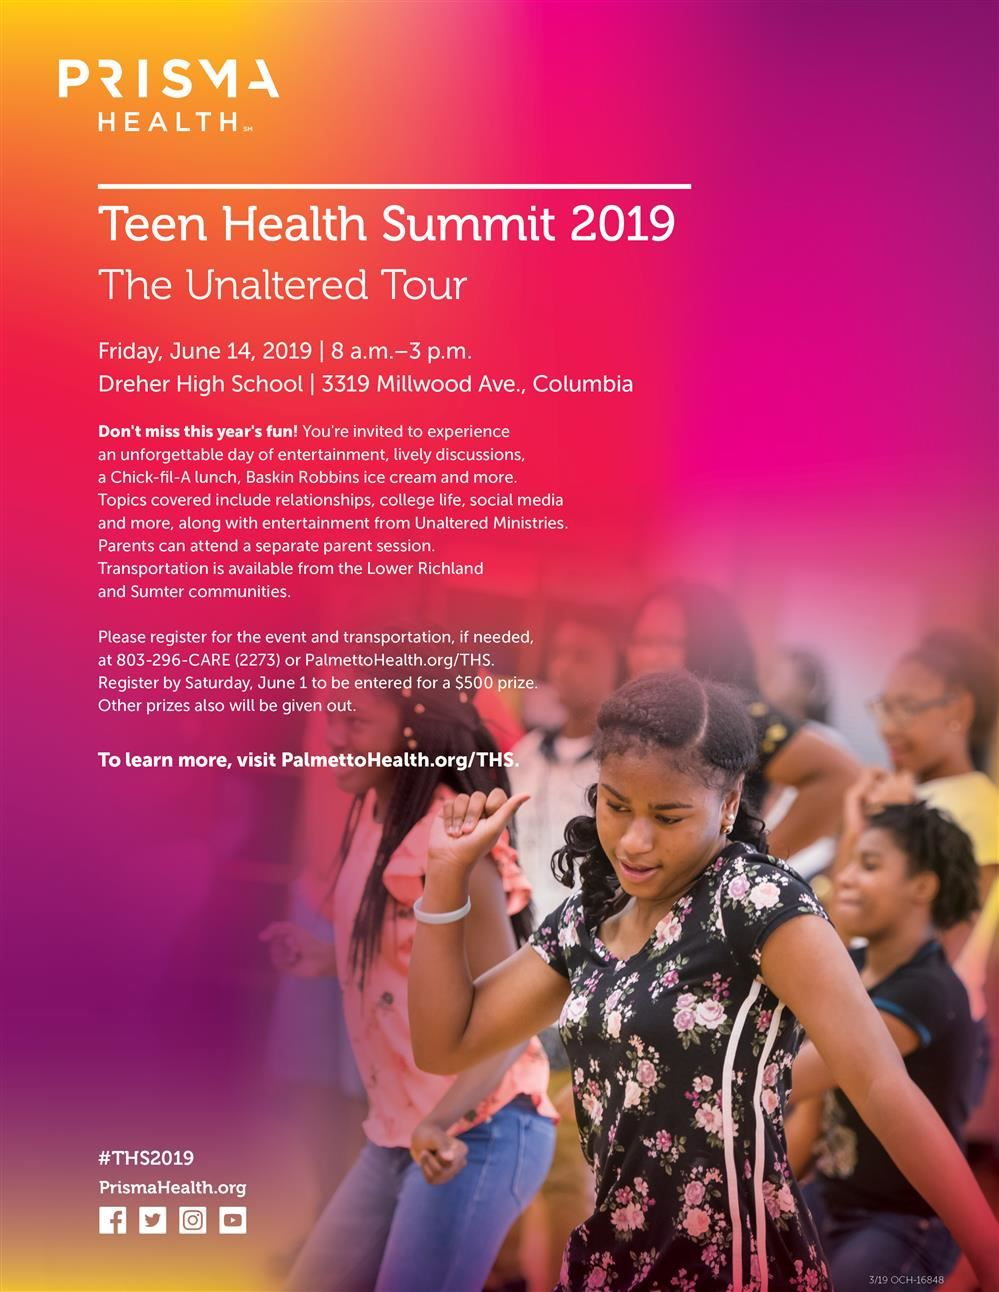 PRISMA Health is hosting 2019 Teen Health Summit at Dreher High School on 6/14/19 from 8am - 3pm.